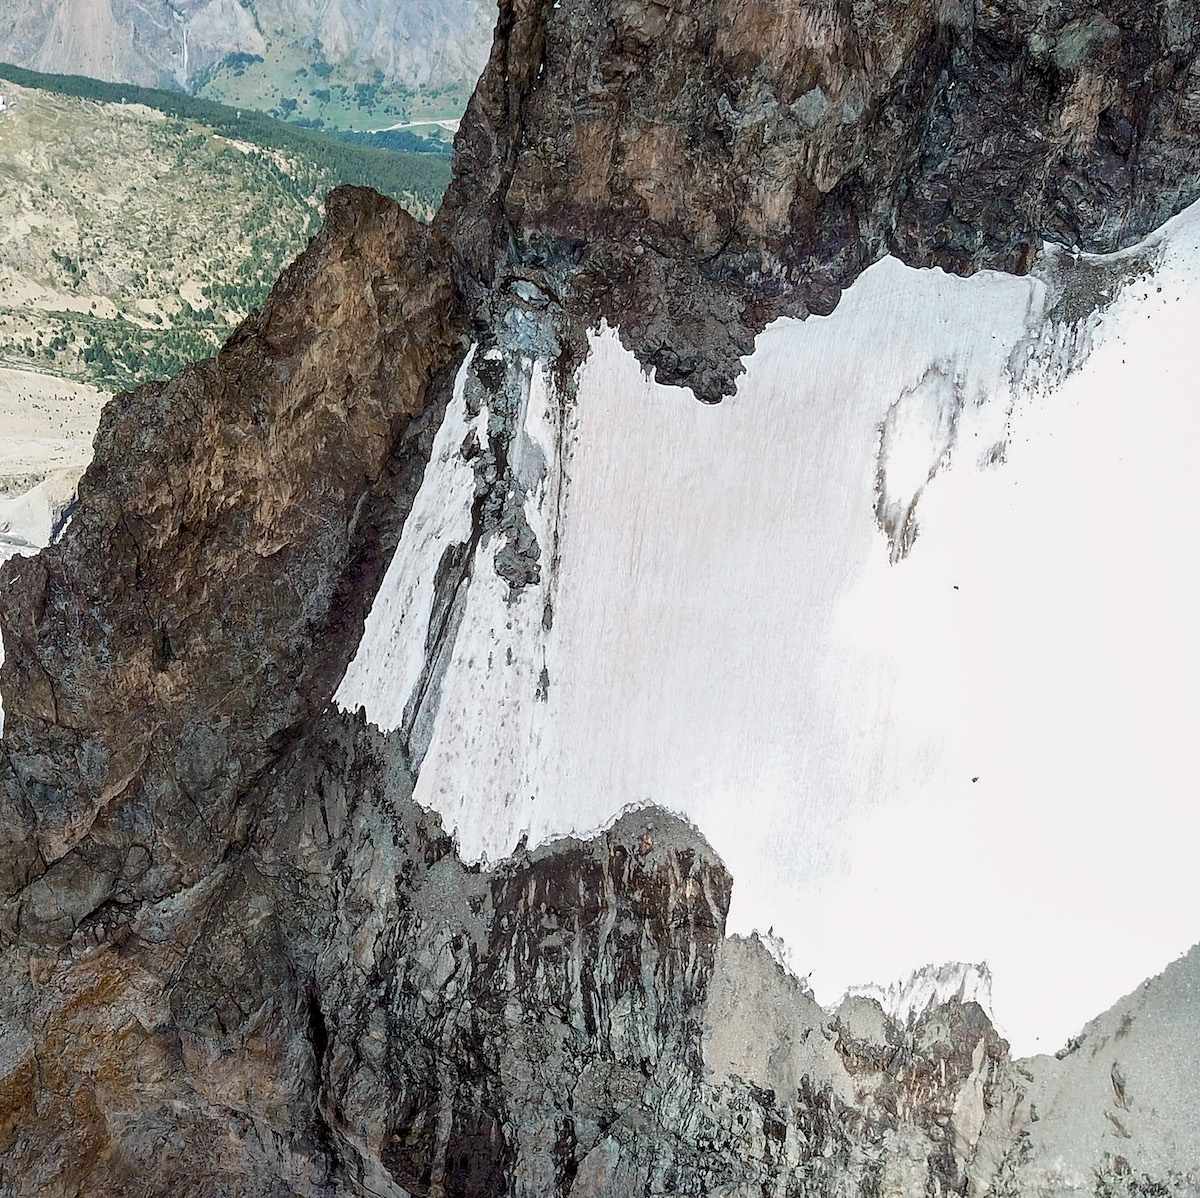 The rockfall zone on the Glacier Carre on August 19, 2018, 12 days after two pillars broke and caused a massive debris slide. [Photo] Benjamin Ribeyre, with a drone and special authorization from Parc national des Ecrins